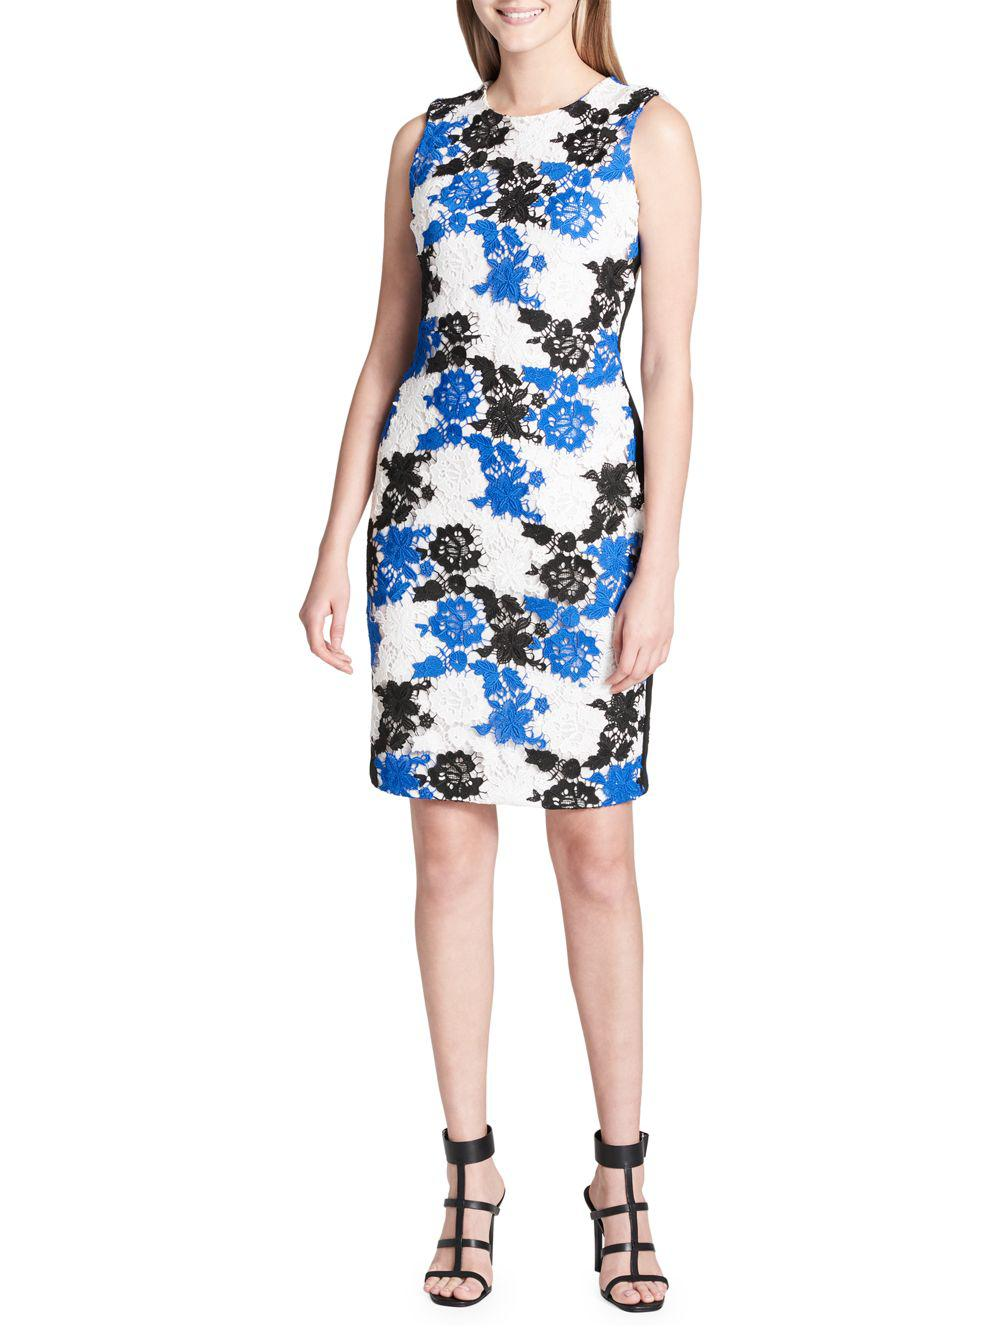 7c64d7e7b2b Lyst - Calvin Klein Sleeveless Floral Crochet Sheath Dress in Blue ...